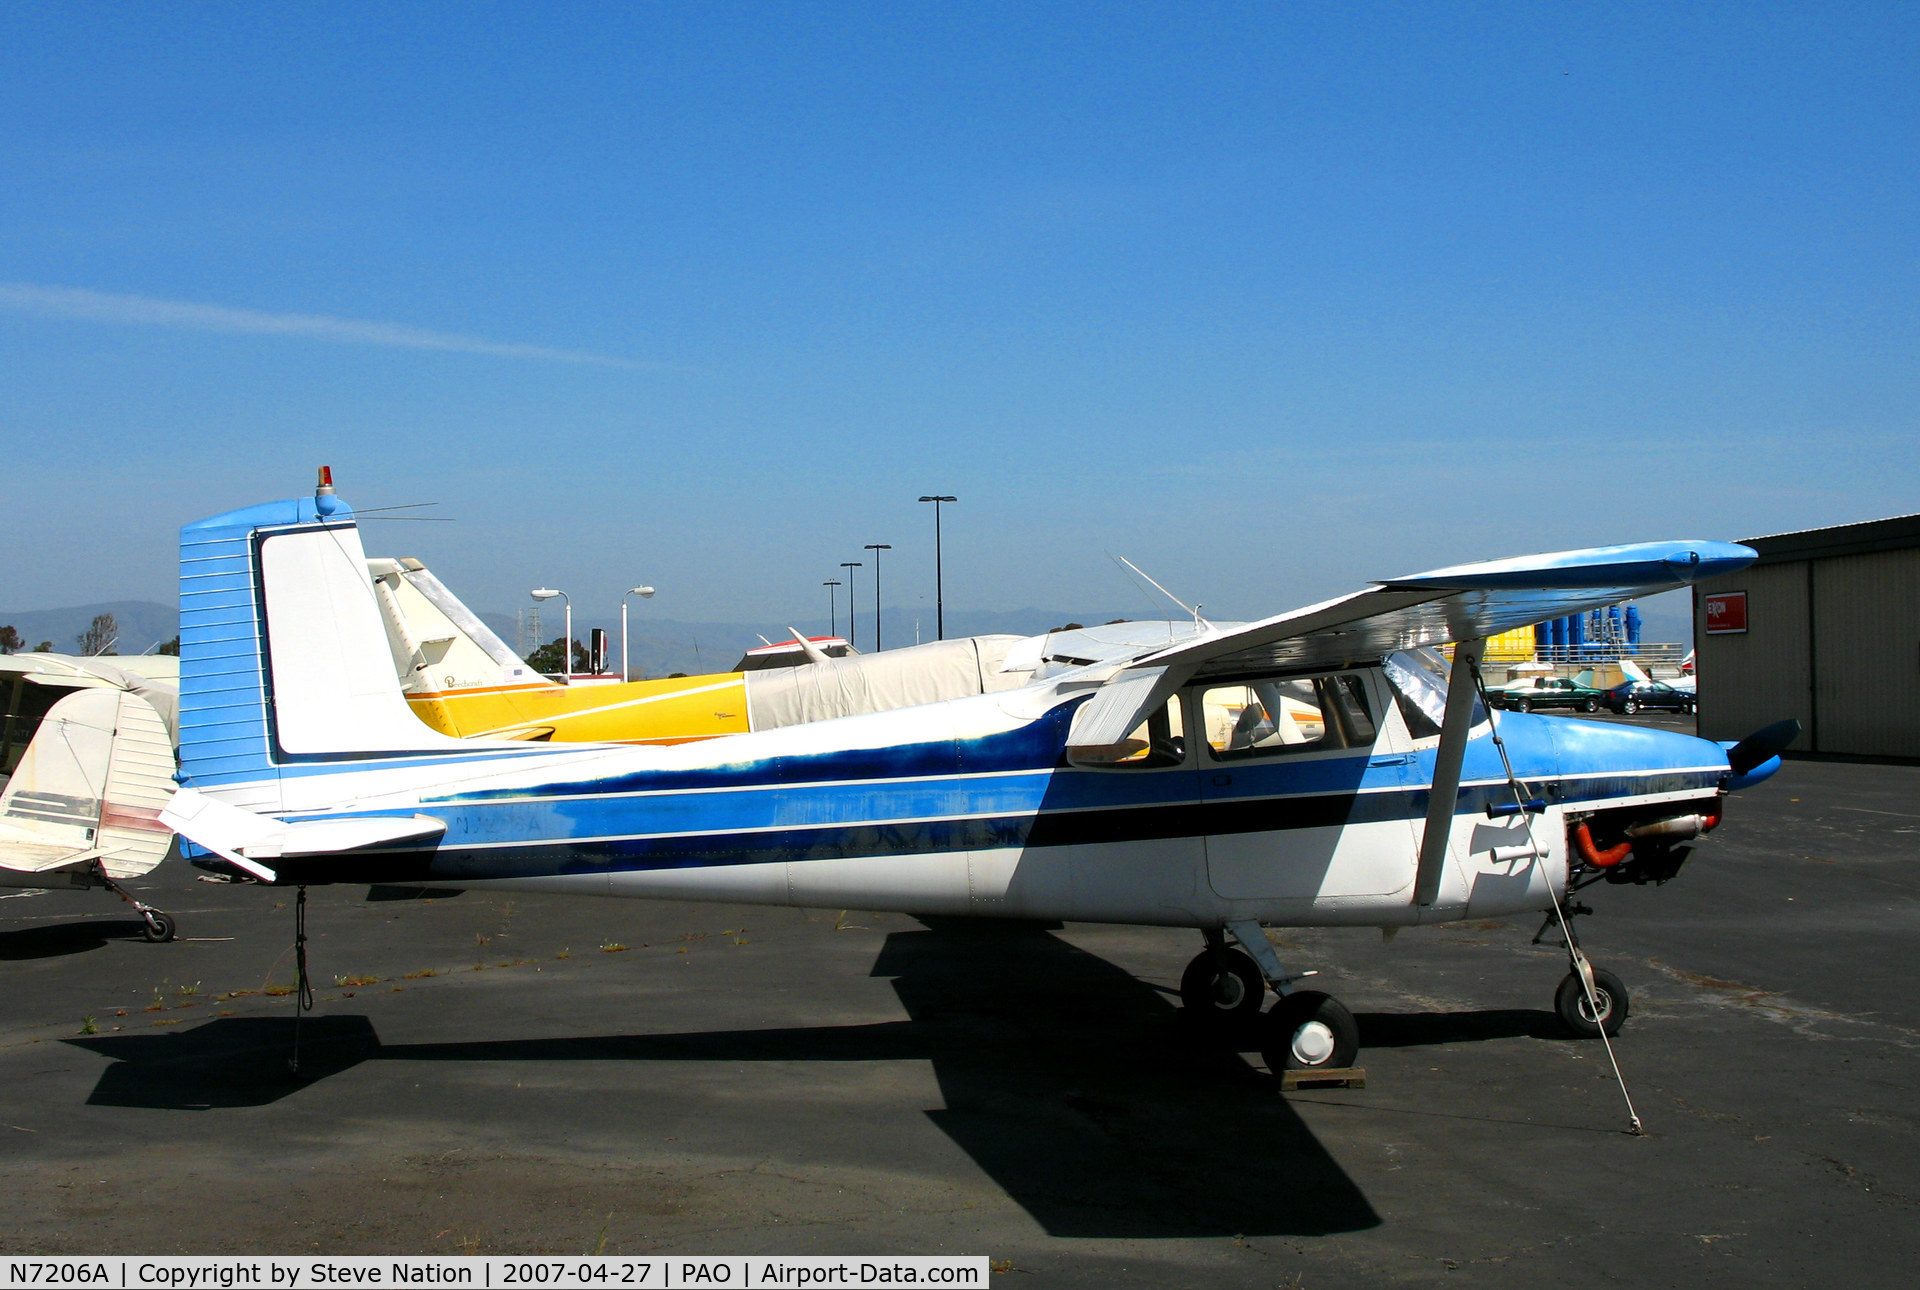 N7206A, 1956 Cessna 172 Skyhawk C/N 29306, 1956 Cessna 172 with faded registration @ Palo Alto, CA